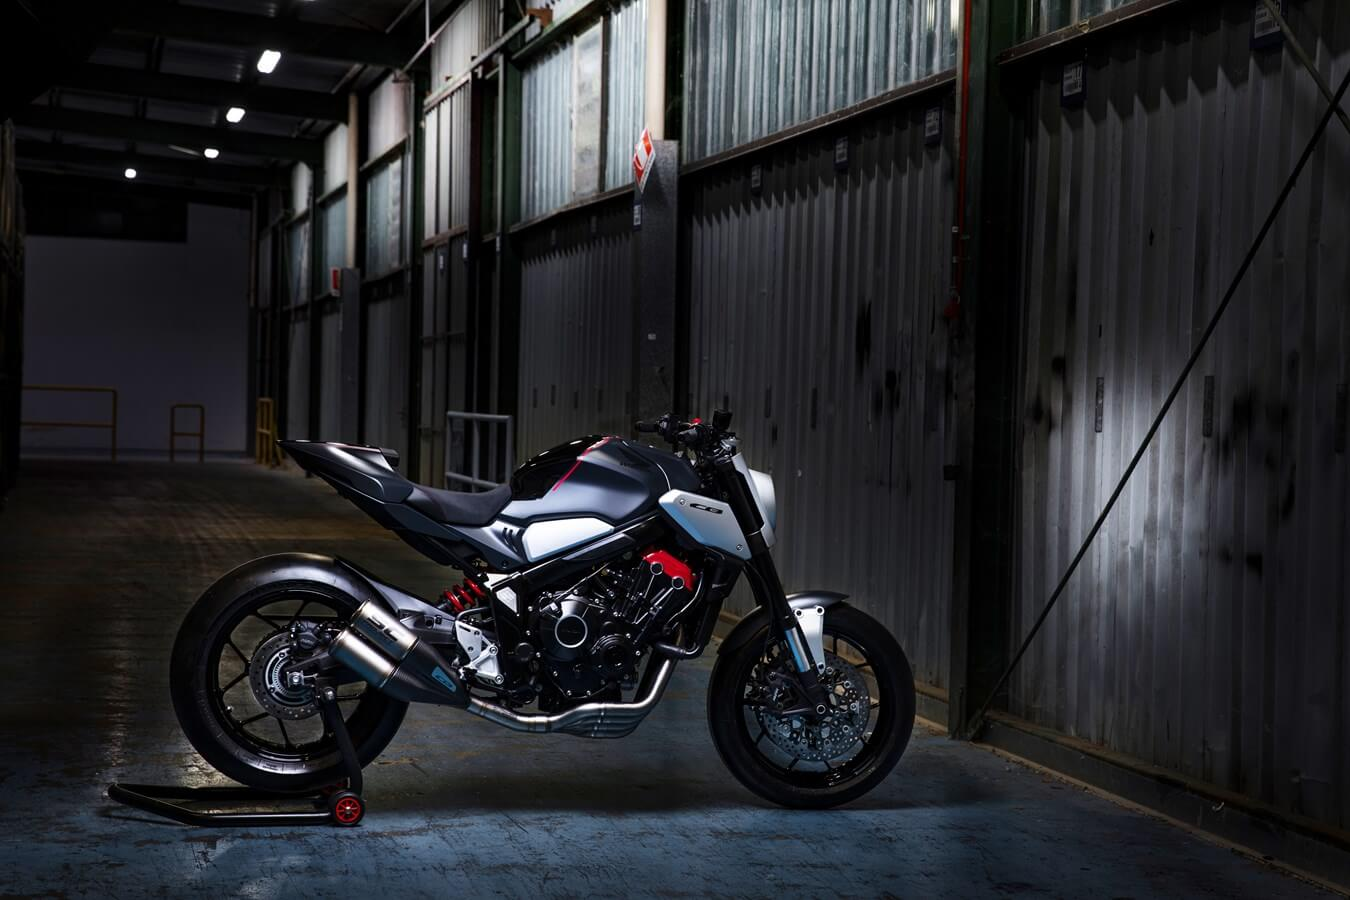 NEW 2019 Honda CB650R Neo Sports Cafe Concept Motorcycle Released! | Intermot 2018